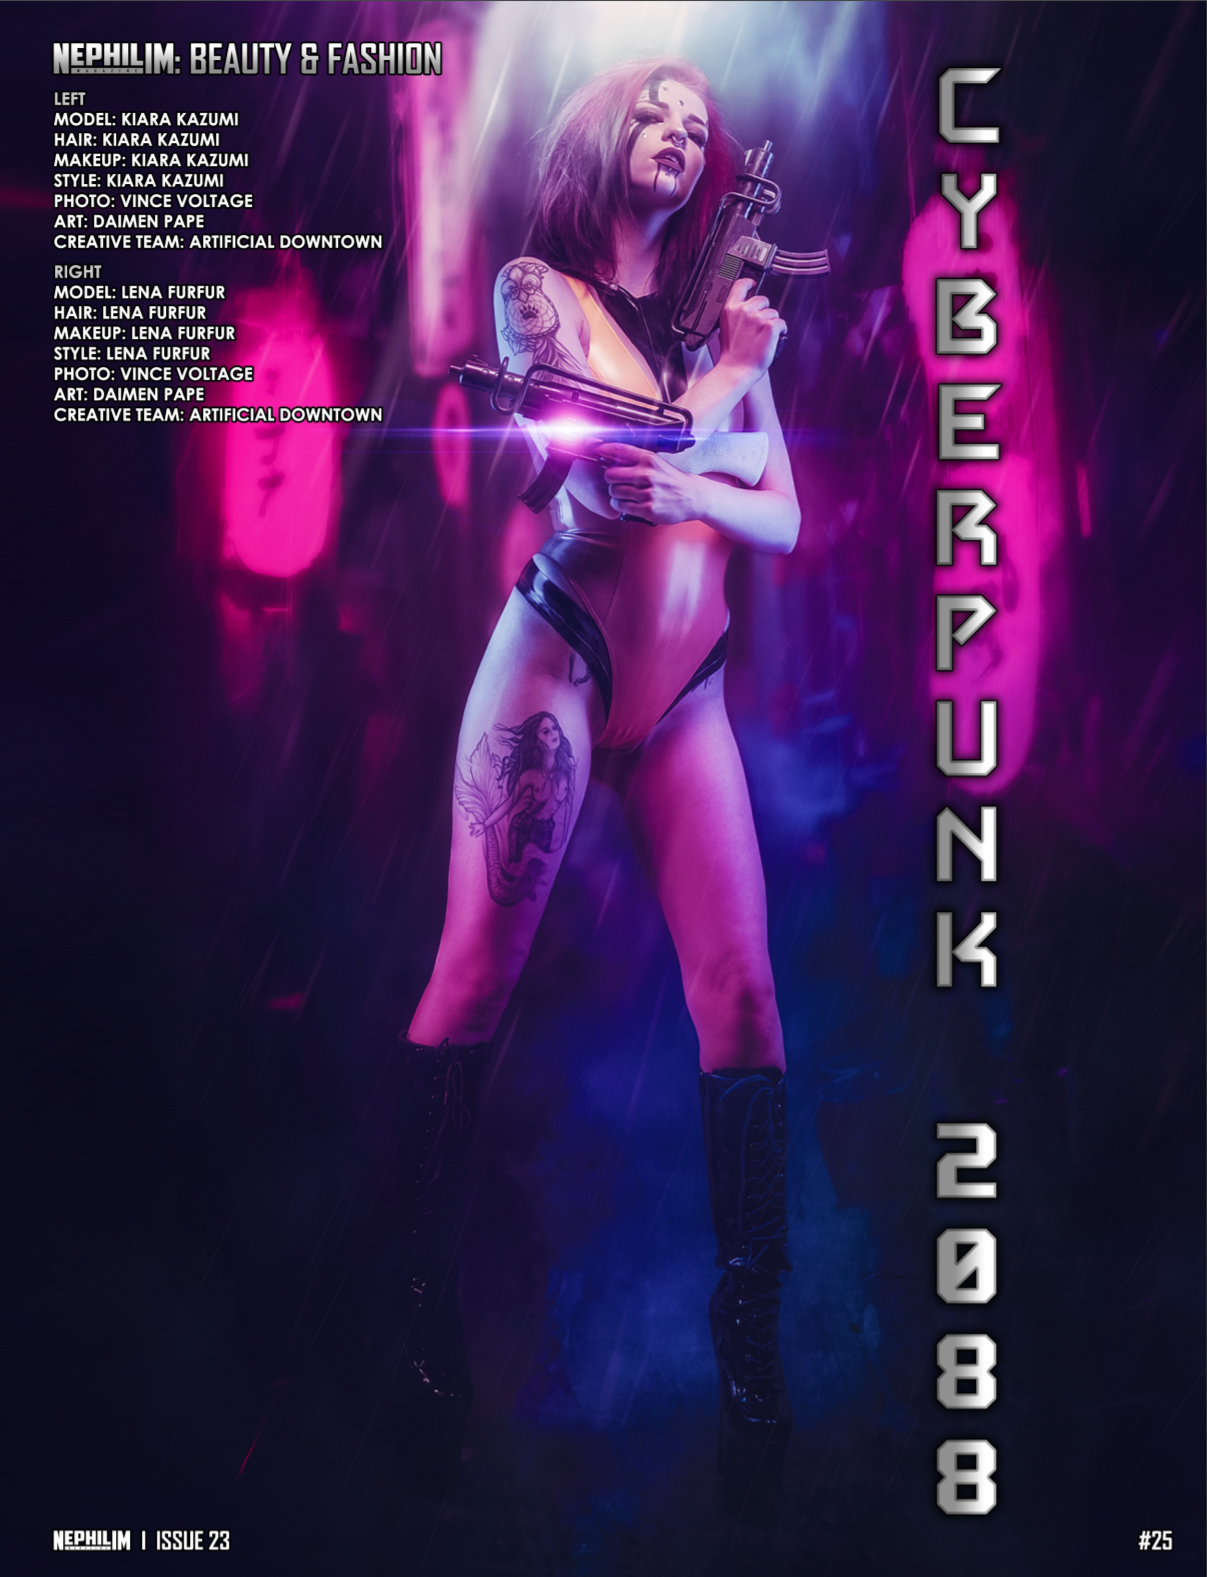 Nephilim Mag March 2020.10